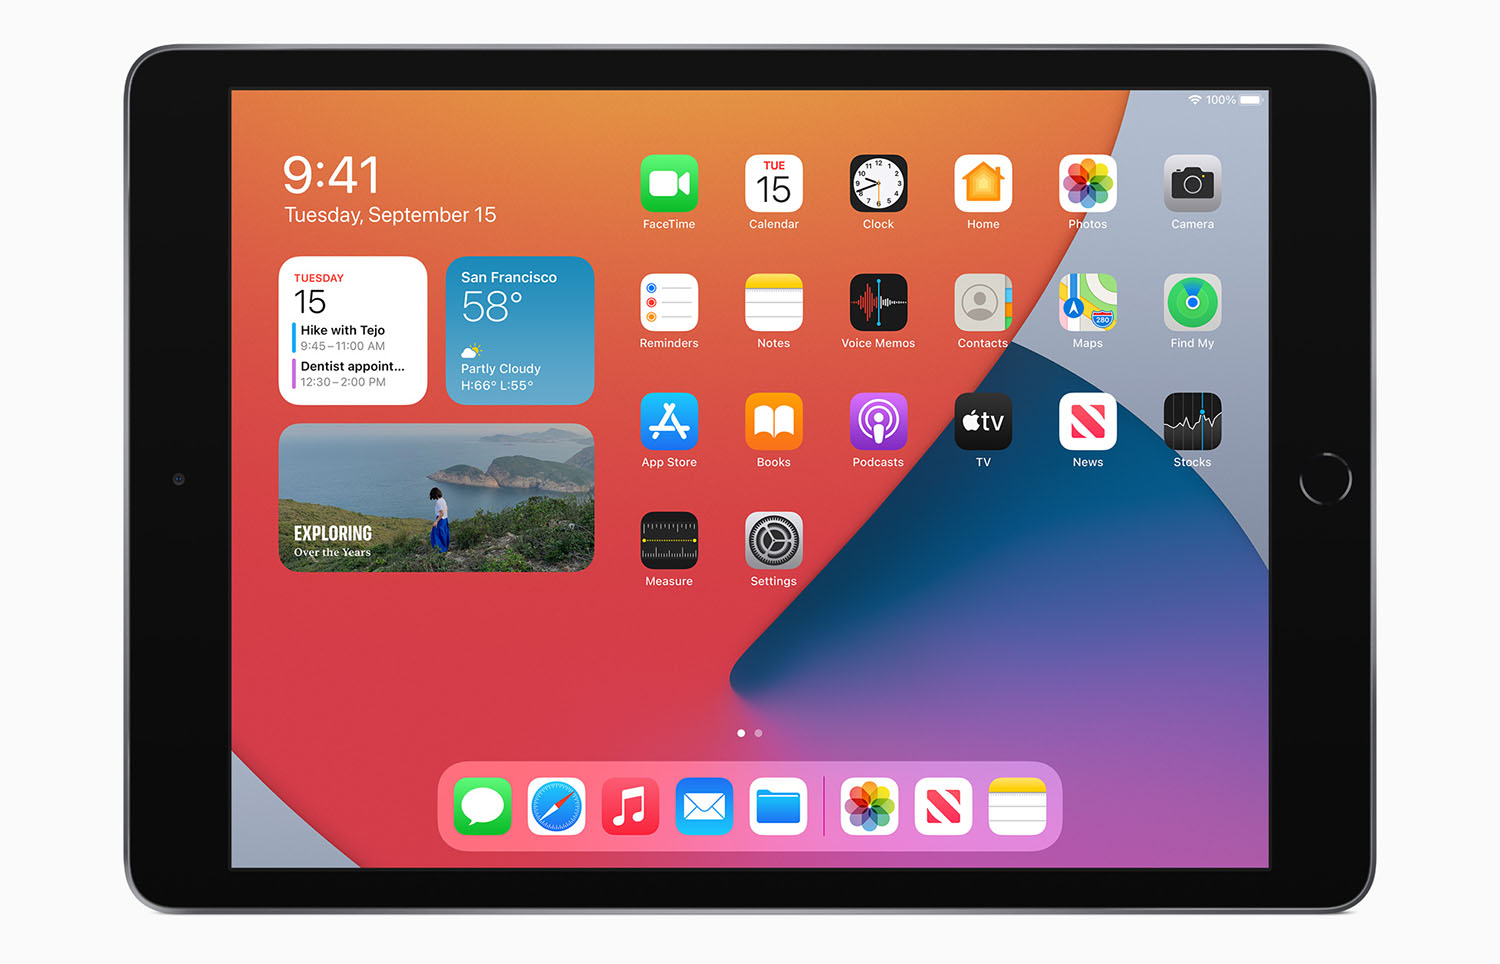 Apple Announces iPad 8 With A12 Bionic, Neural Engine for Machine Learning,  Apple Pencil Support, 10-Hour Battery, More